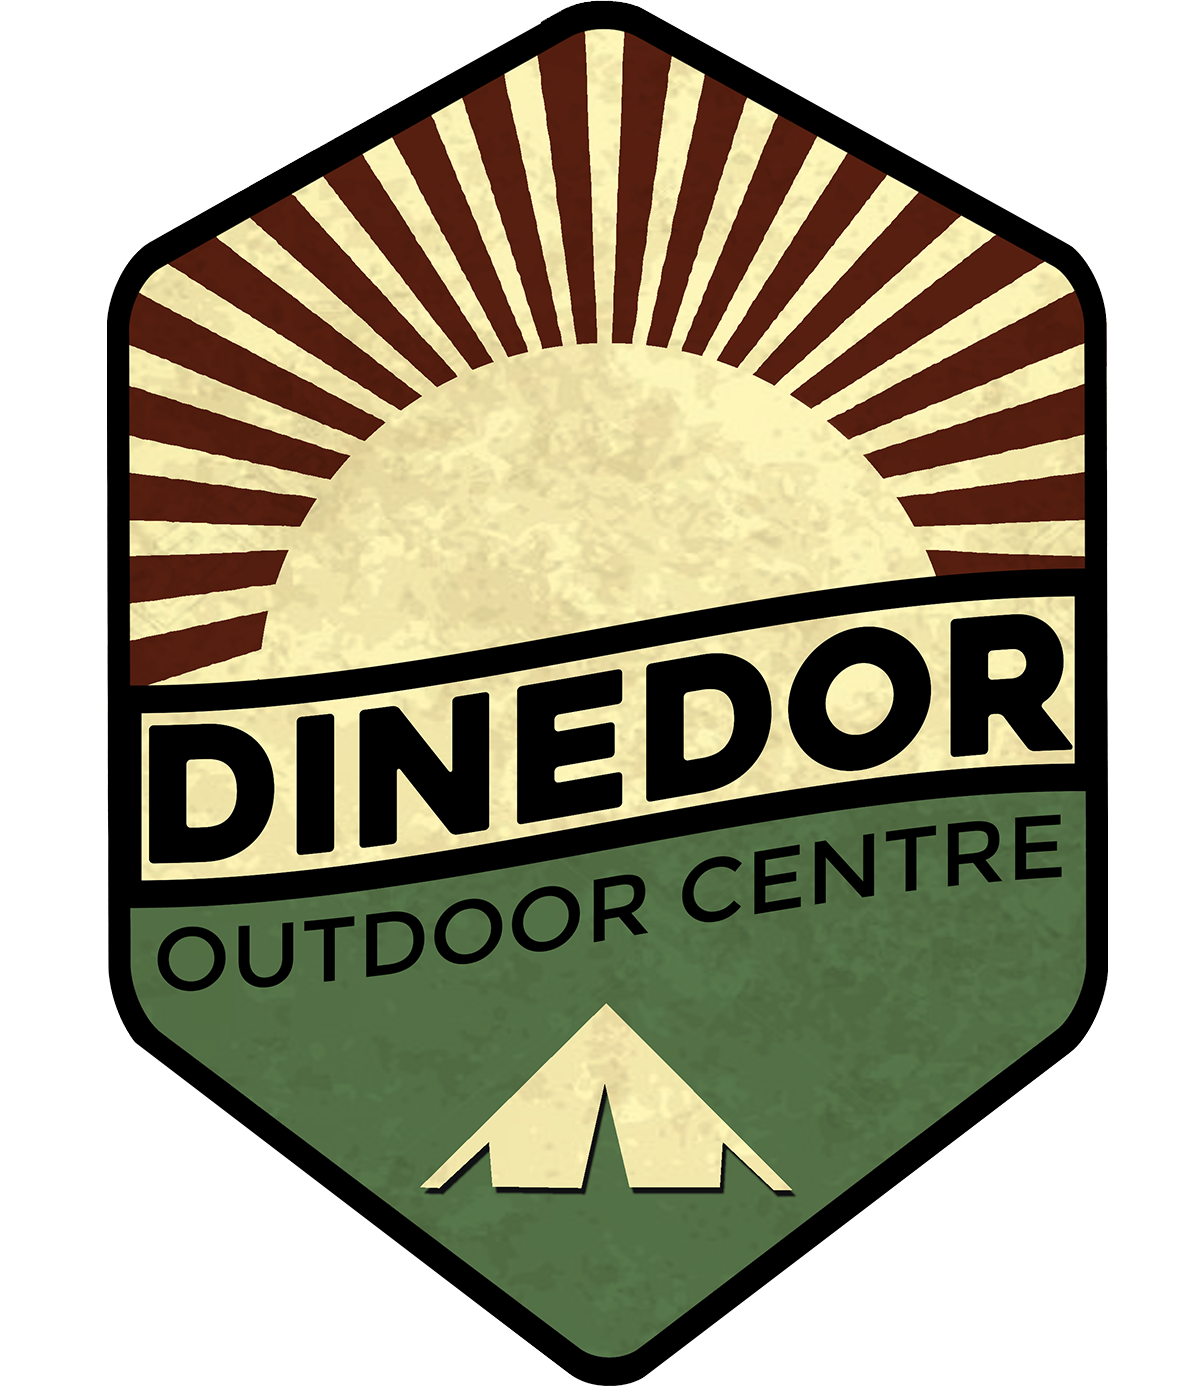 Dinedor Outdoor Centre